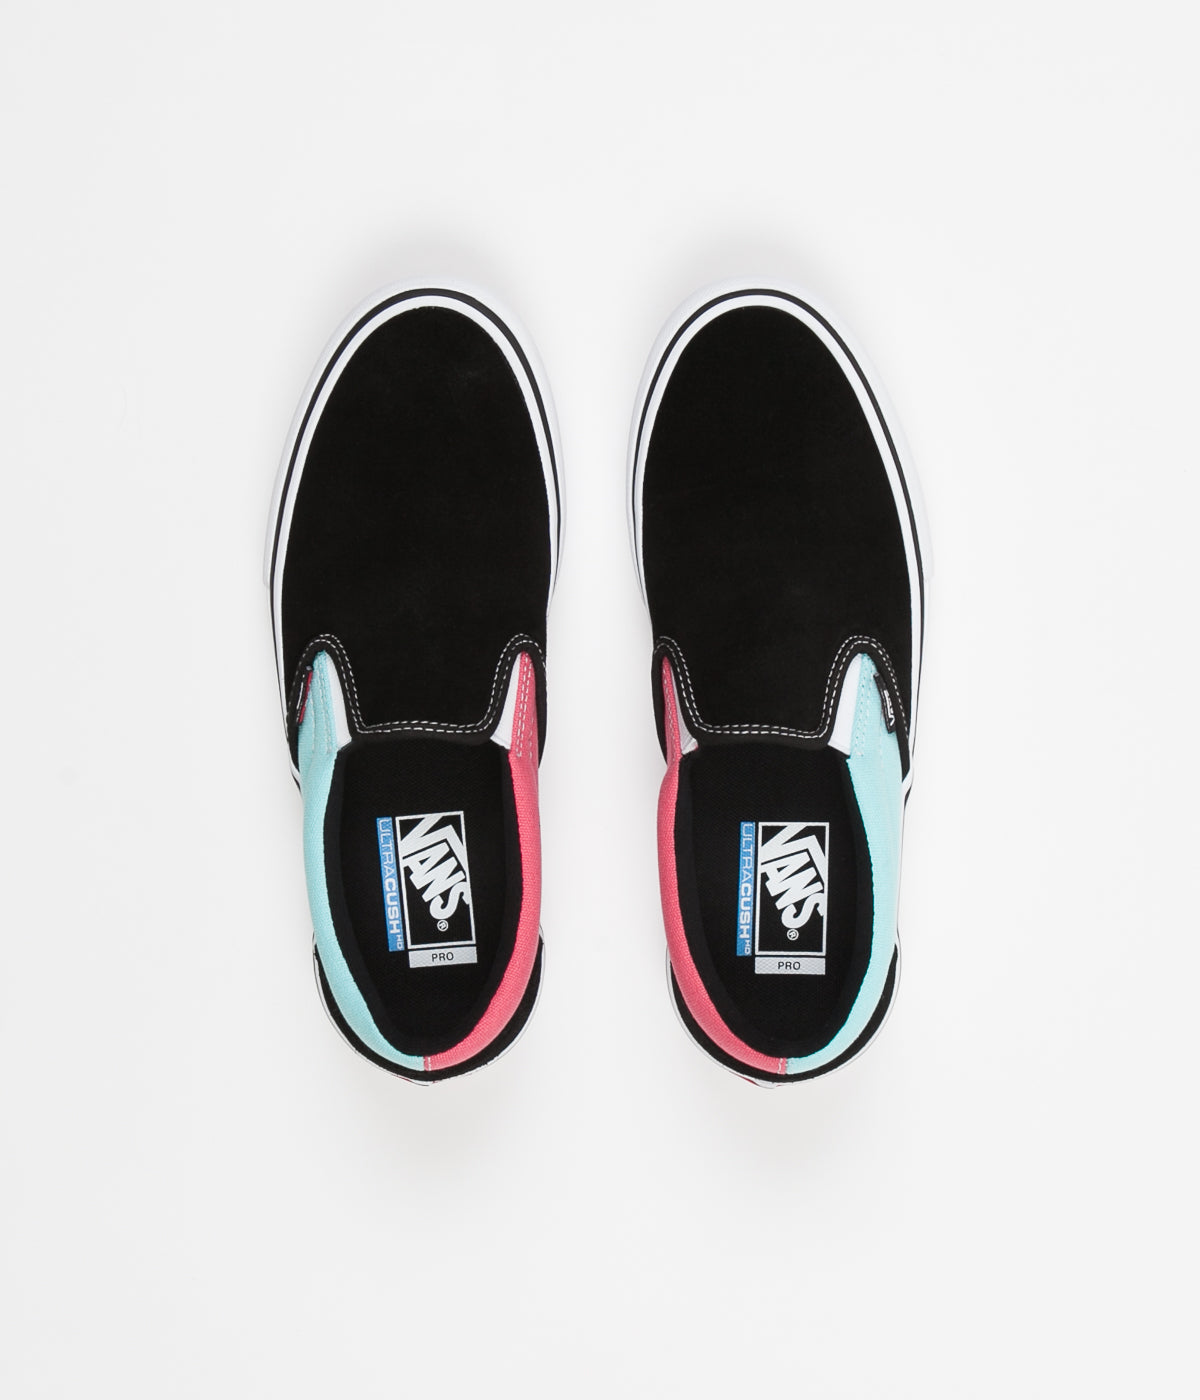 8c44374397 Vans Slip On Pro Asymmetry Shoes - Black   Blue   Rose ...